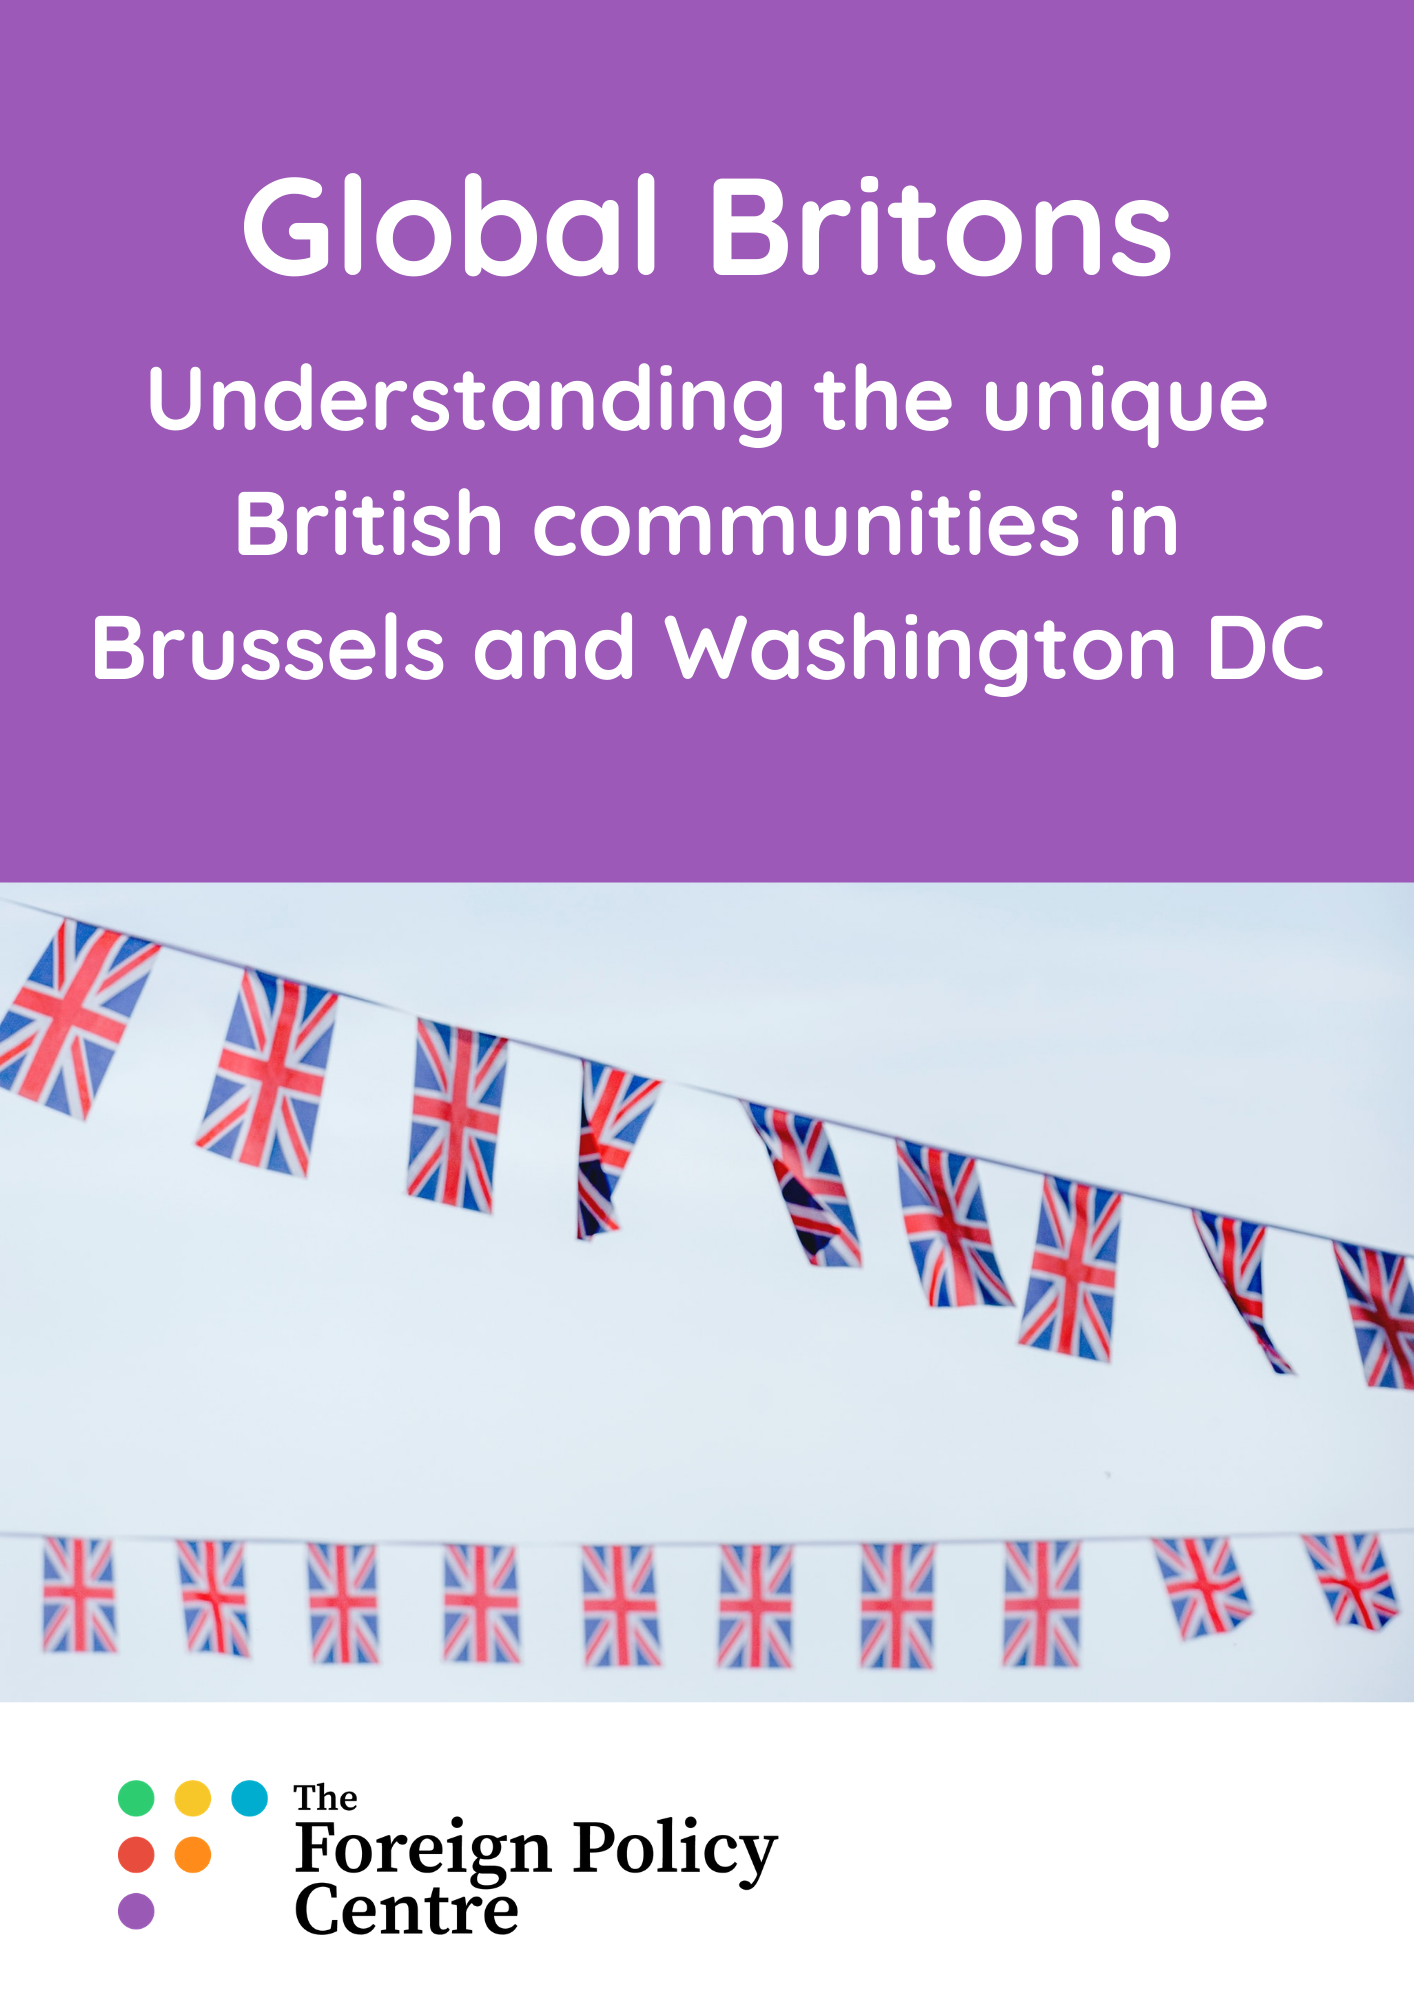 Global Britons: Understanding the unique British communities in Brussels and Washington DC